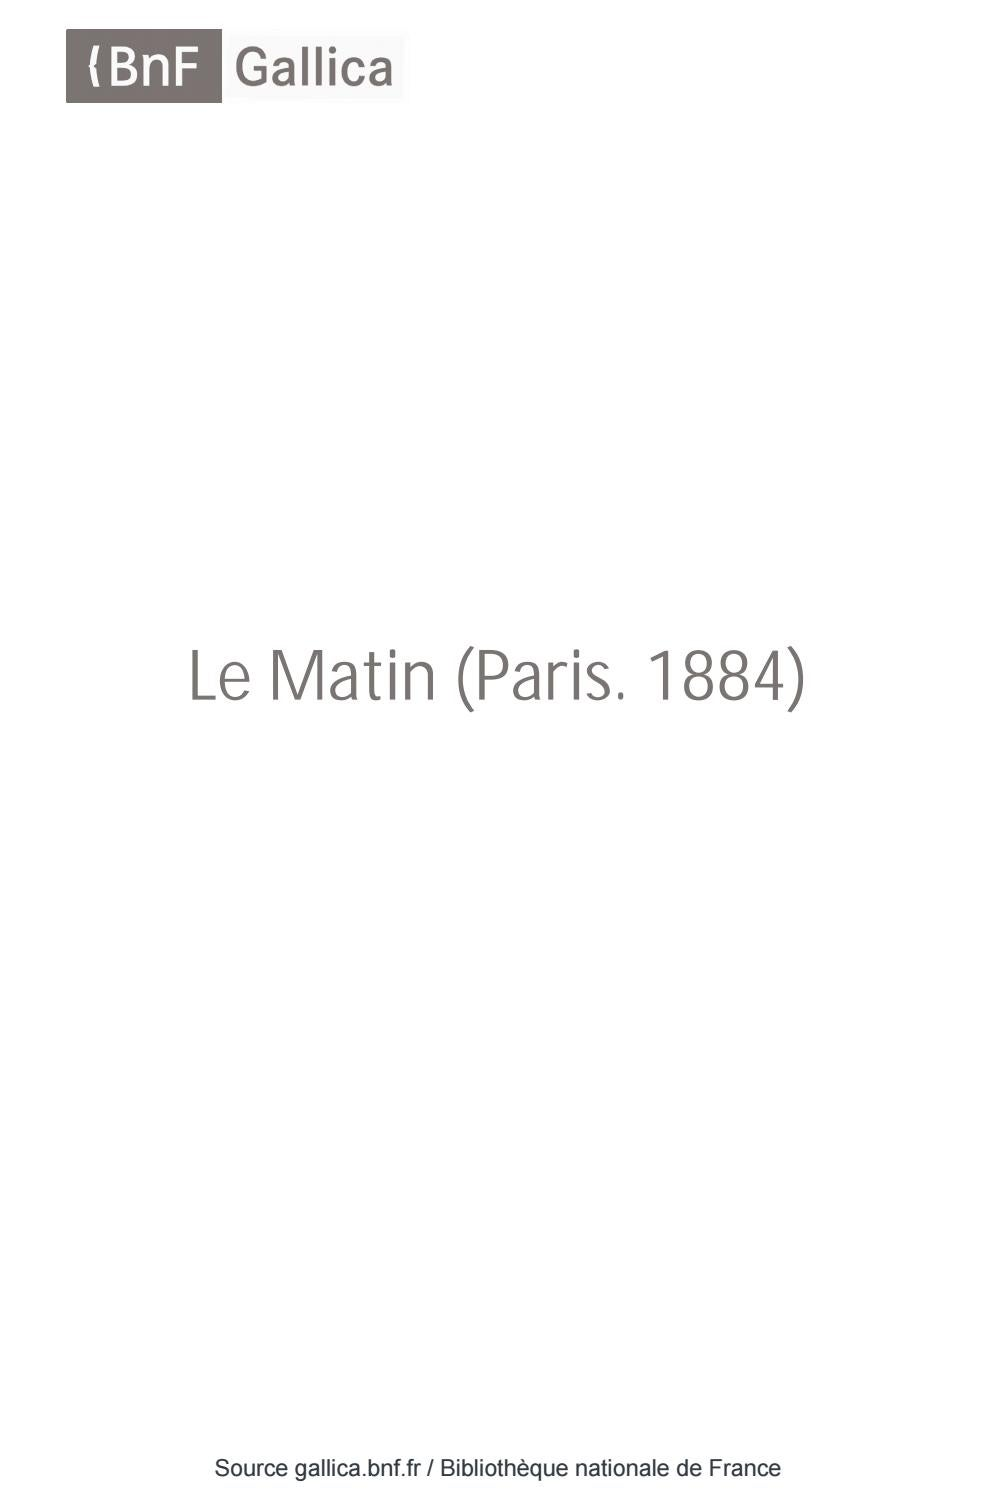 Matin26041931 Le By Issuu Aaleme Président 4AqRL3j5